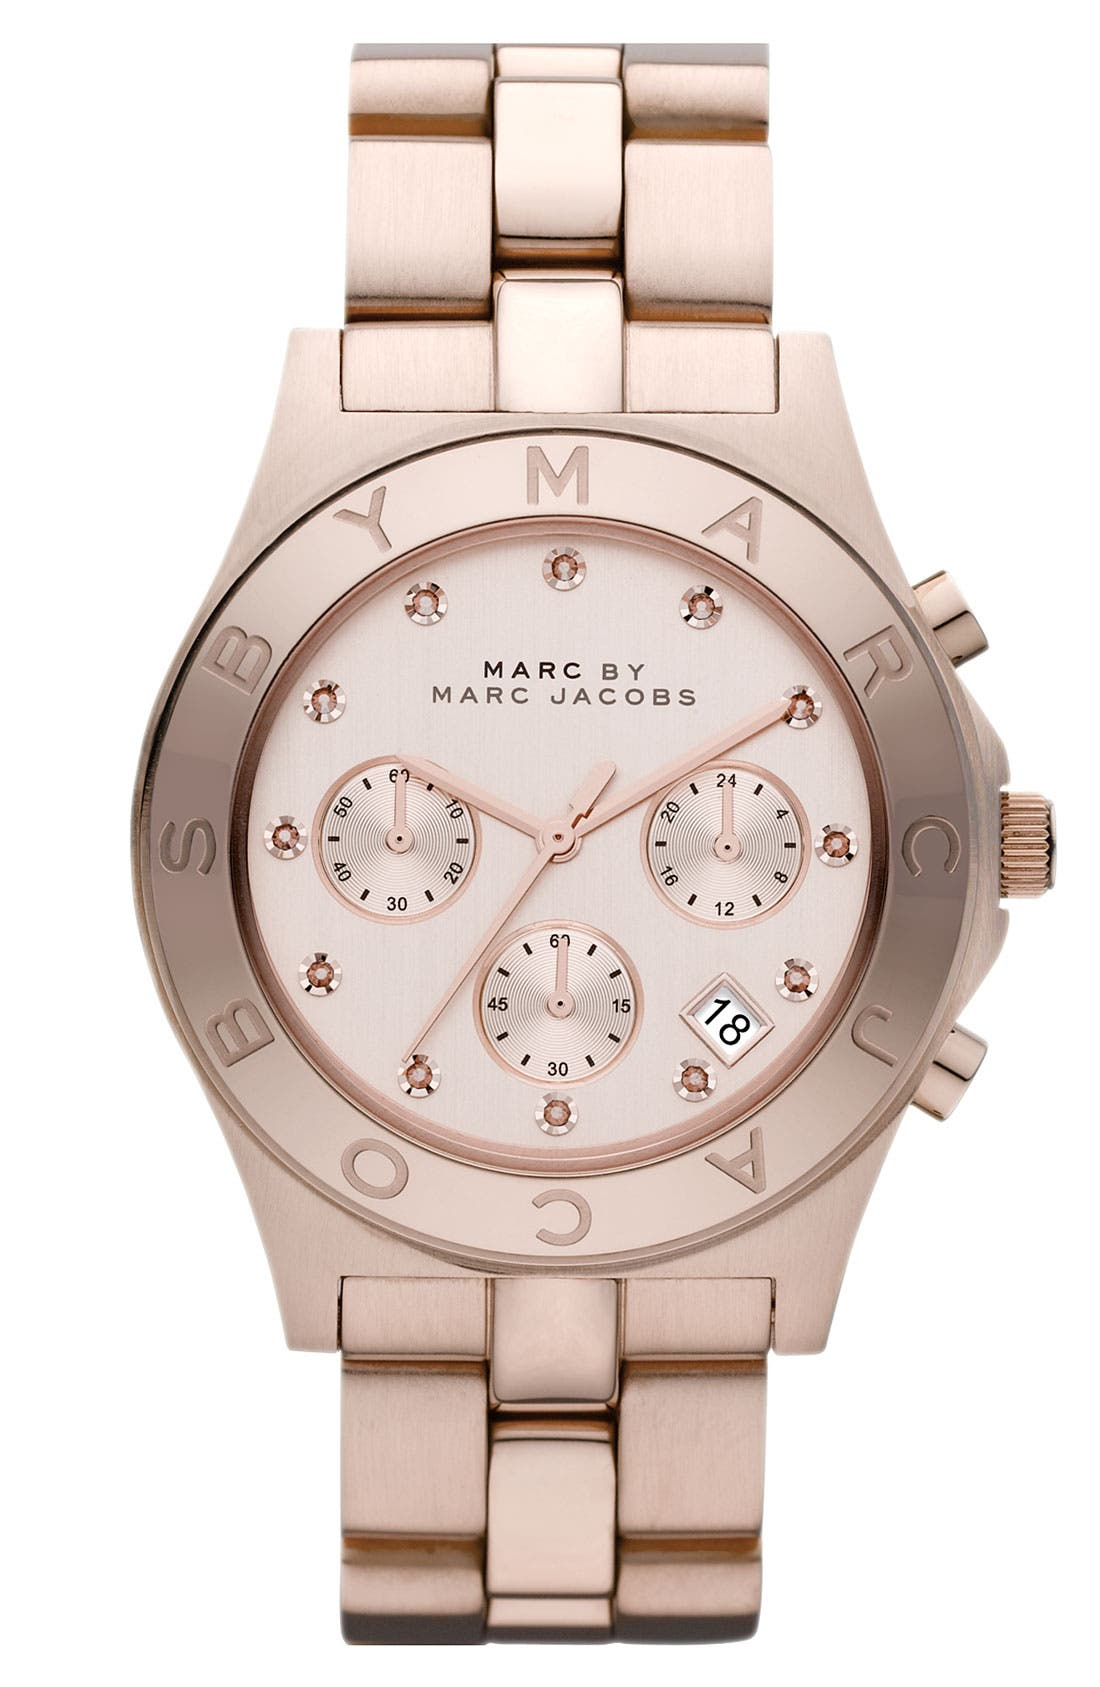 Main Image - MARC JACOBS 'Blade' Crystal Index Watch